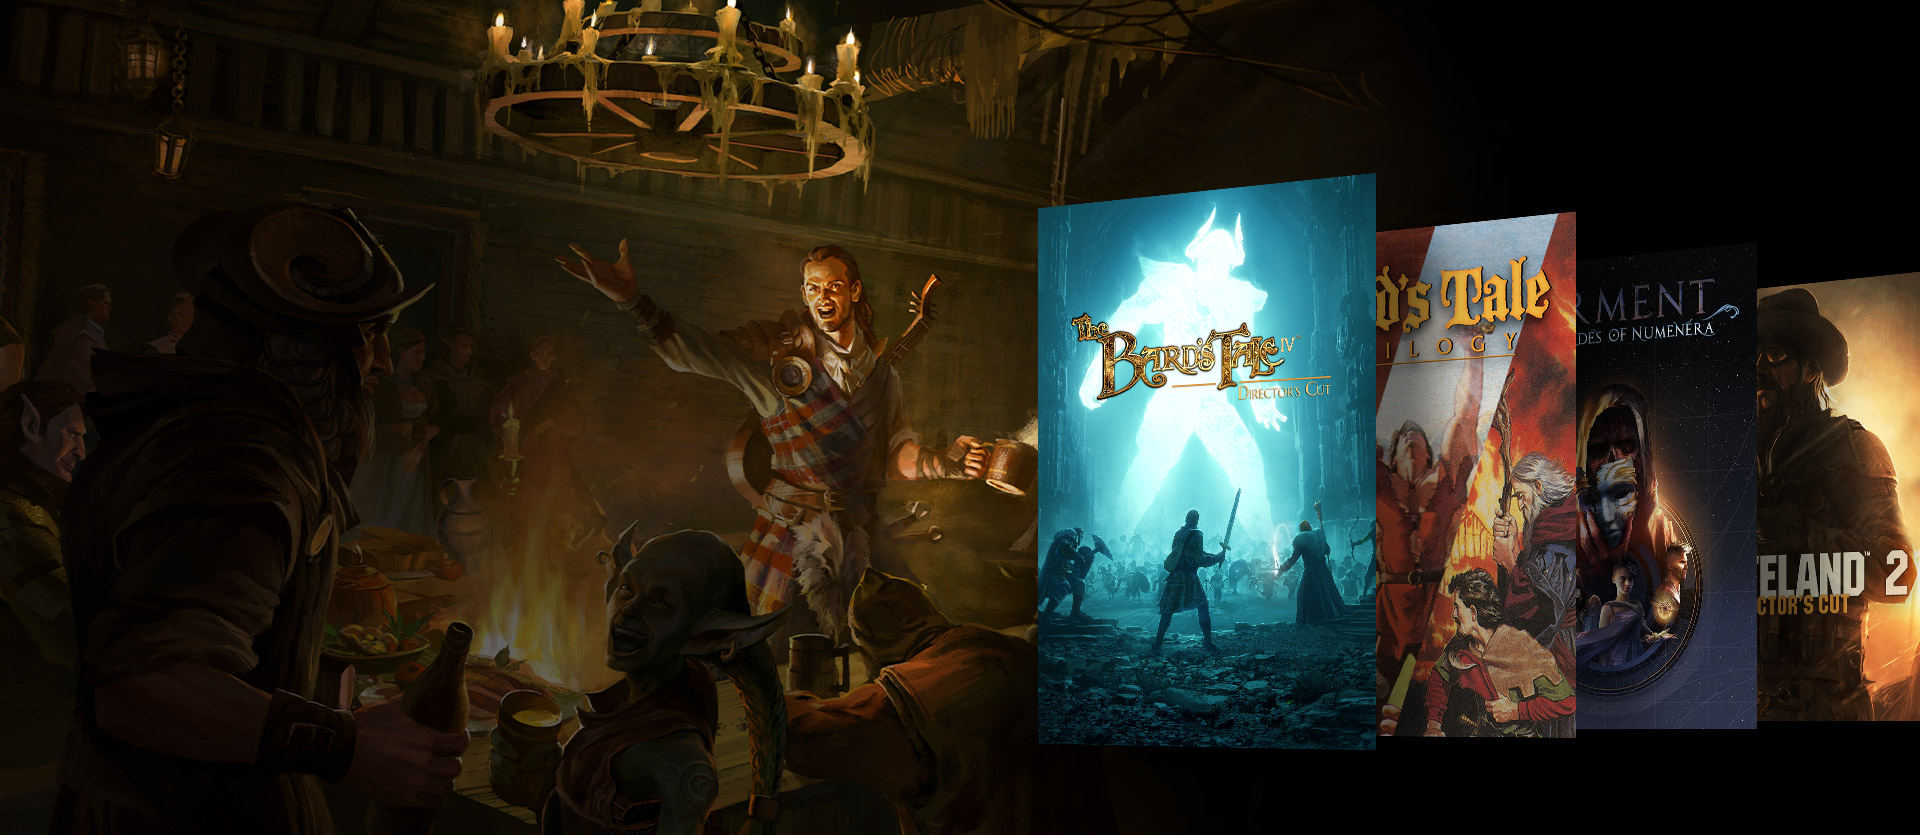 Boxshots of The Bard's Tale IV, Bard's Tale Trilogy, Torment: Tales of Numenara and Wasteland 2. A background of characters around a table with drinks